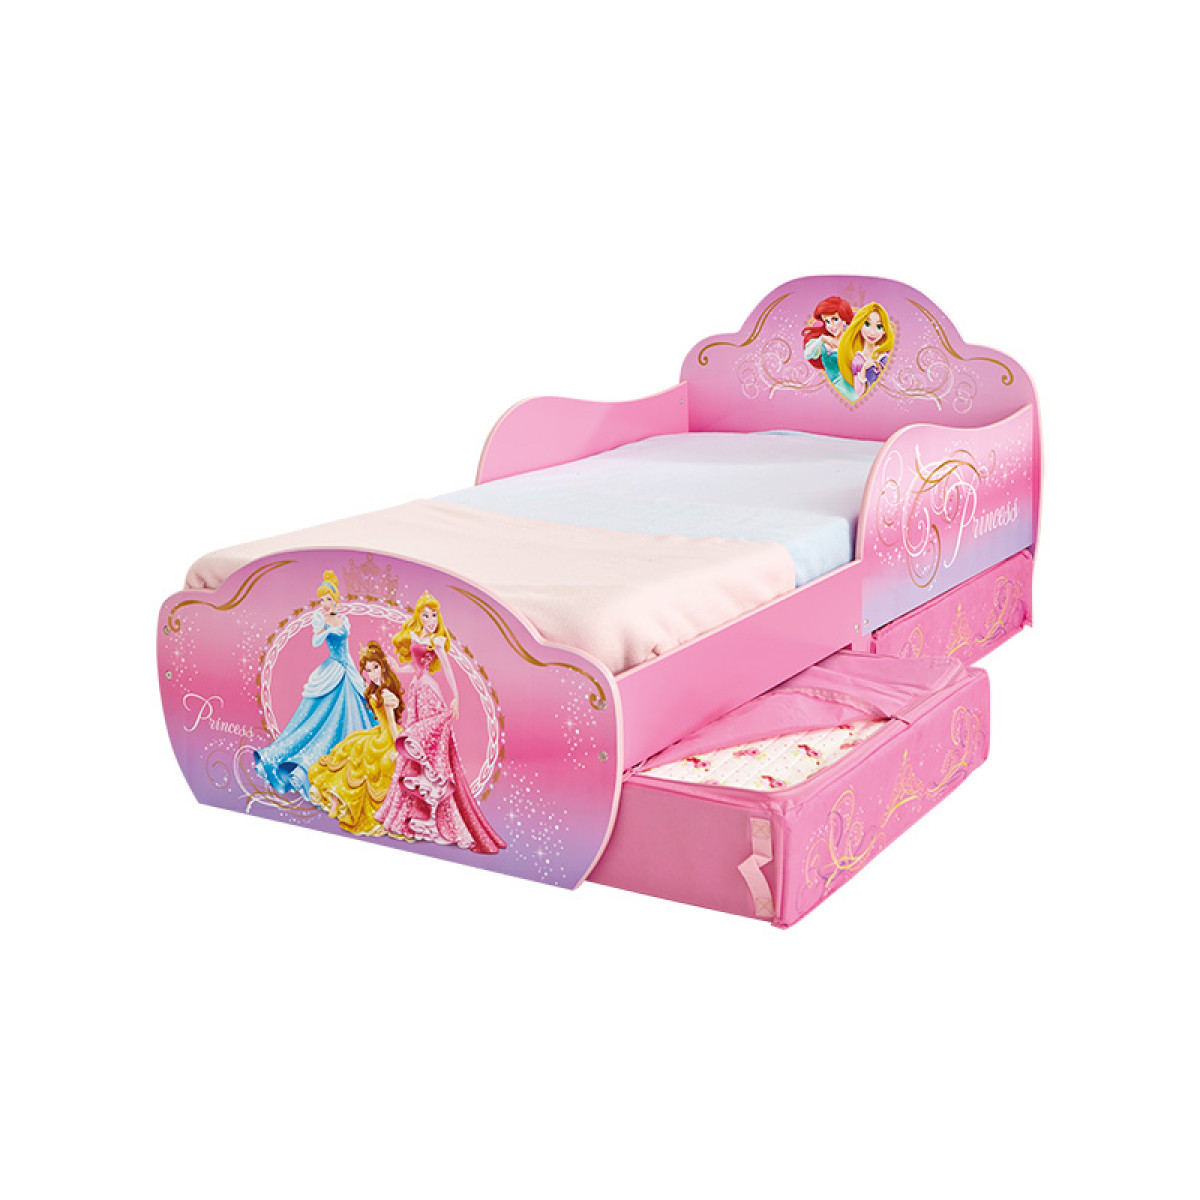 Disney Princess Toddler Bed With Storage Bedroom